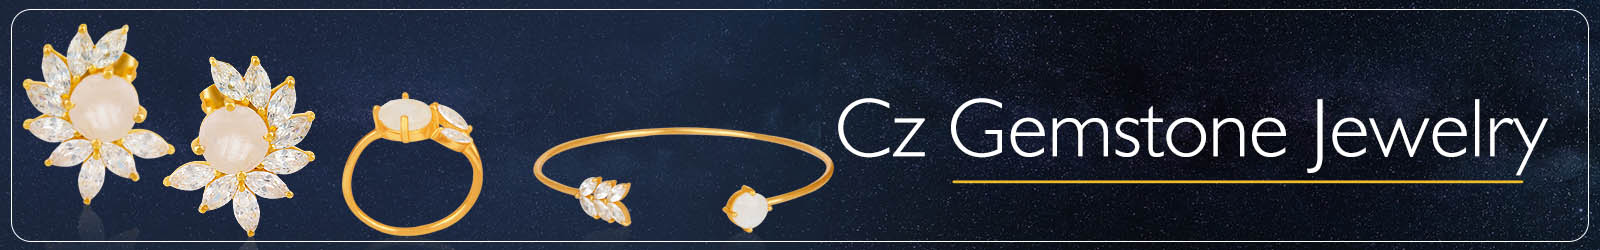 Cz Gemstone Jewelry Collection And Manufacturer